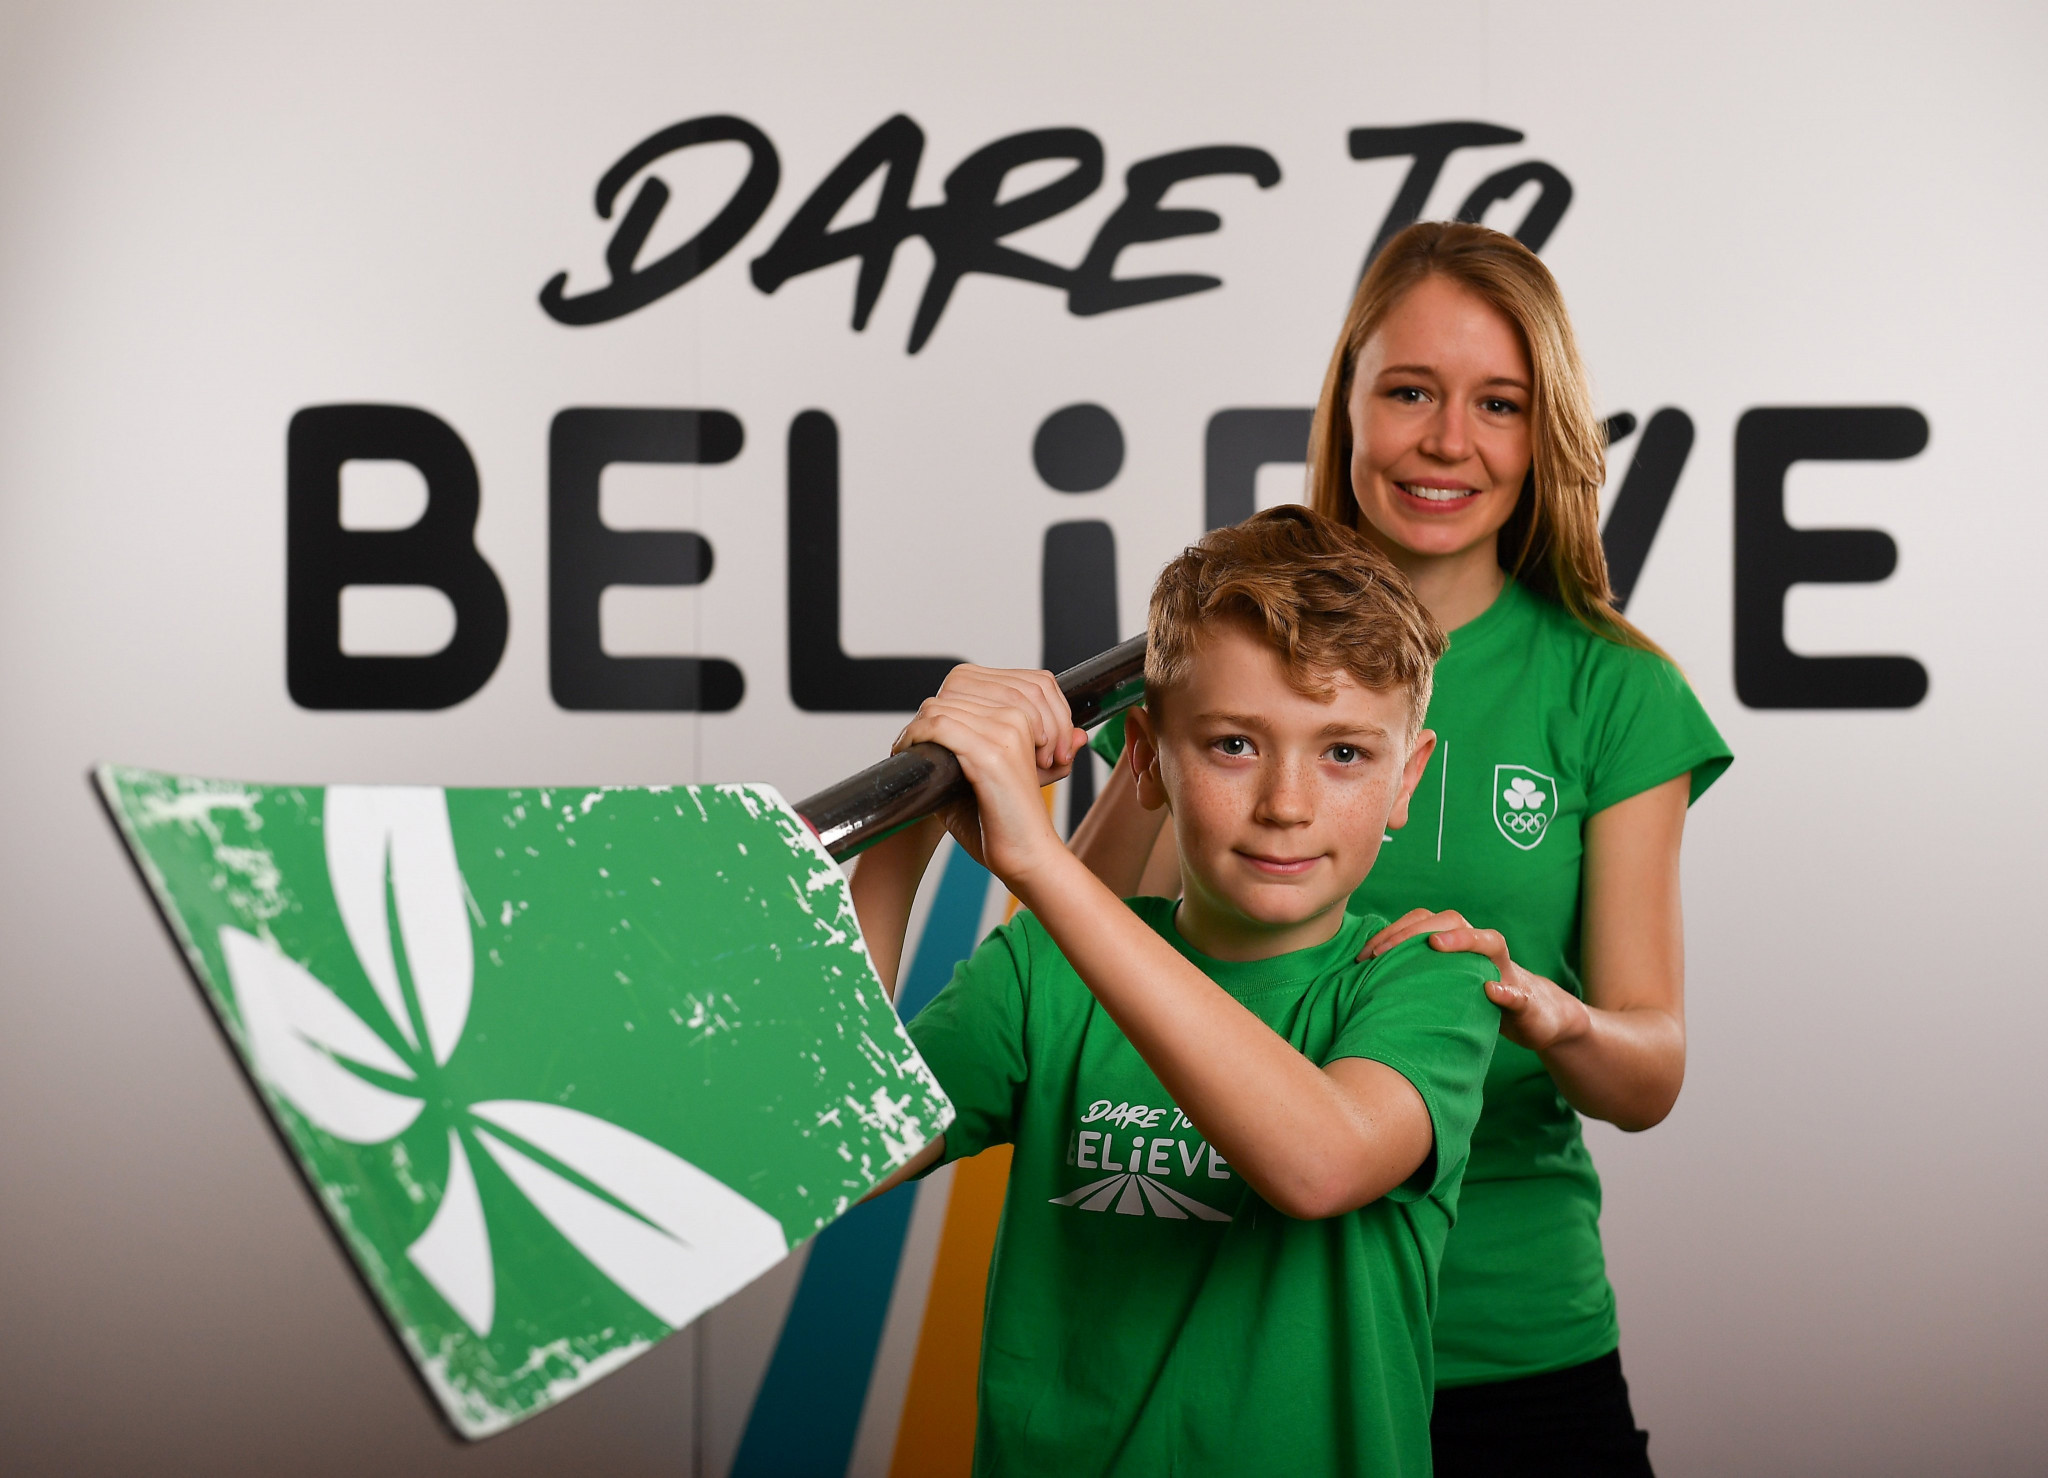 OFI Dare to Believe circuit challenge launched